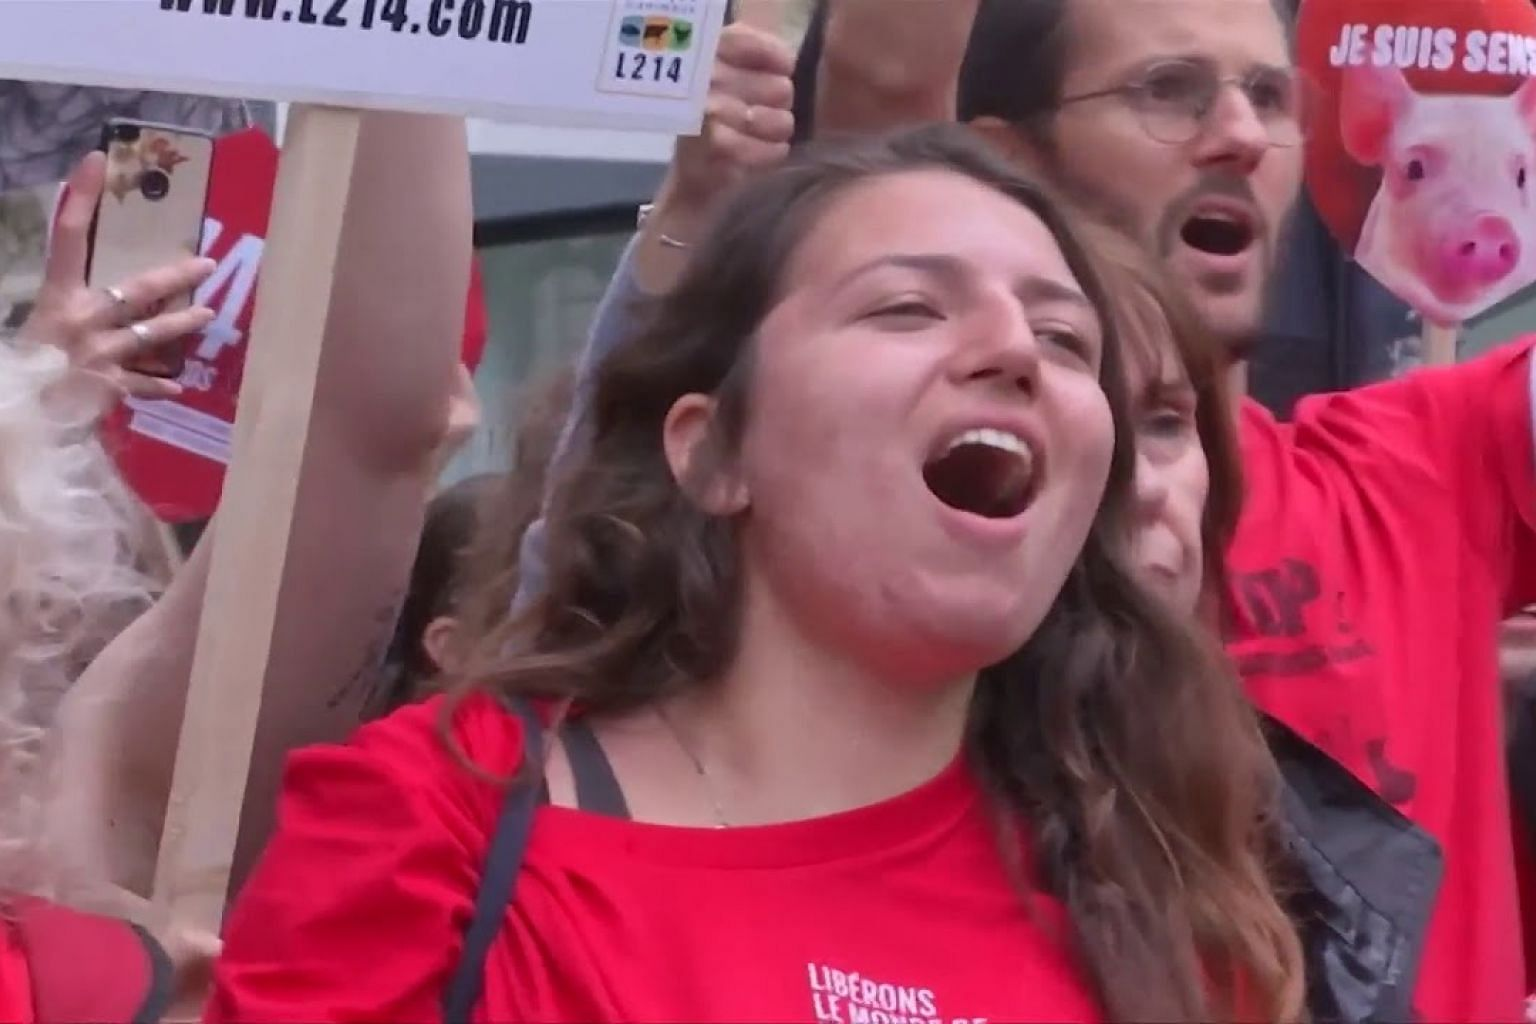 'Freedom can't wait': Hundreds march in Paris to call for closure of slaughterhouses